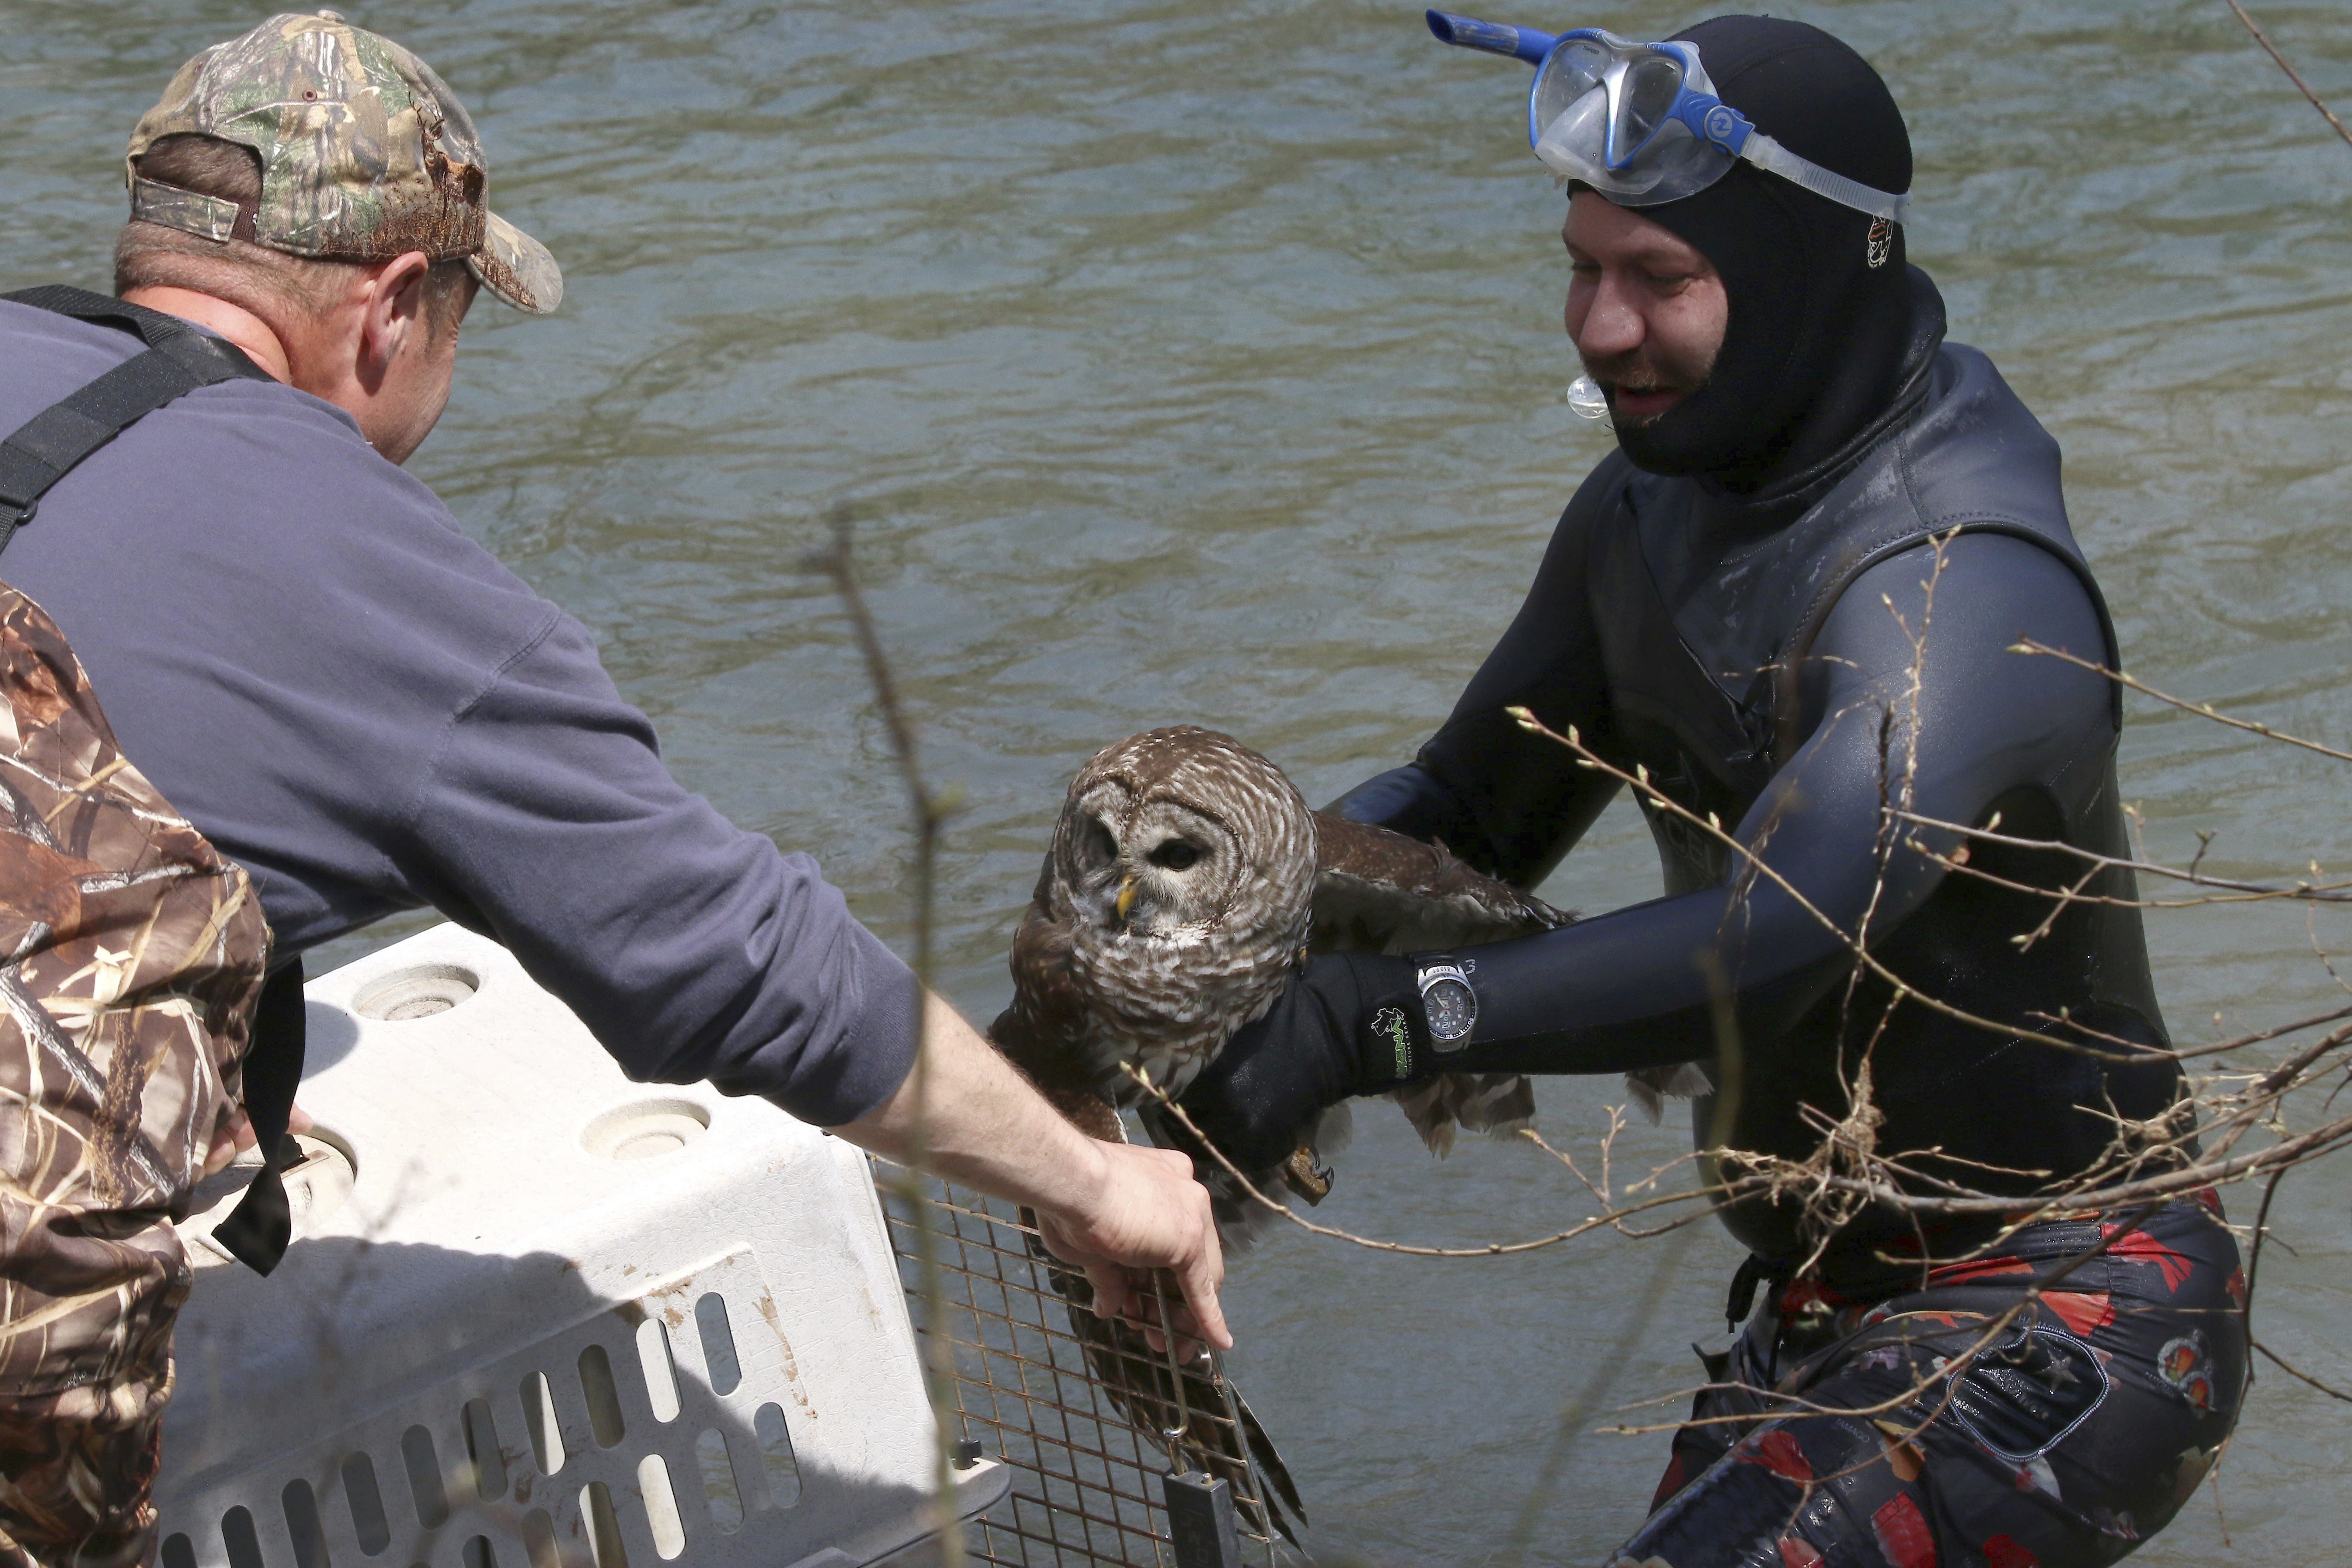 Knapp carrying the newly-rescued barred owl to safety.